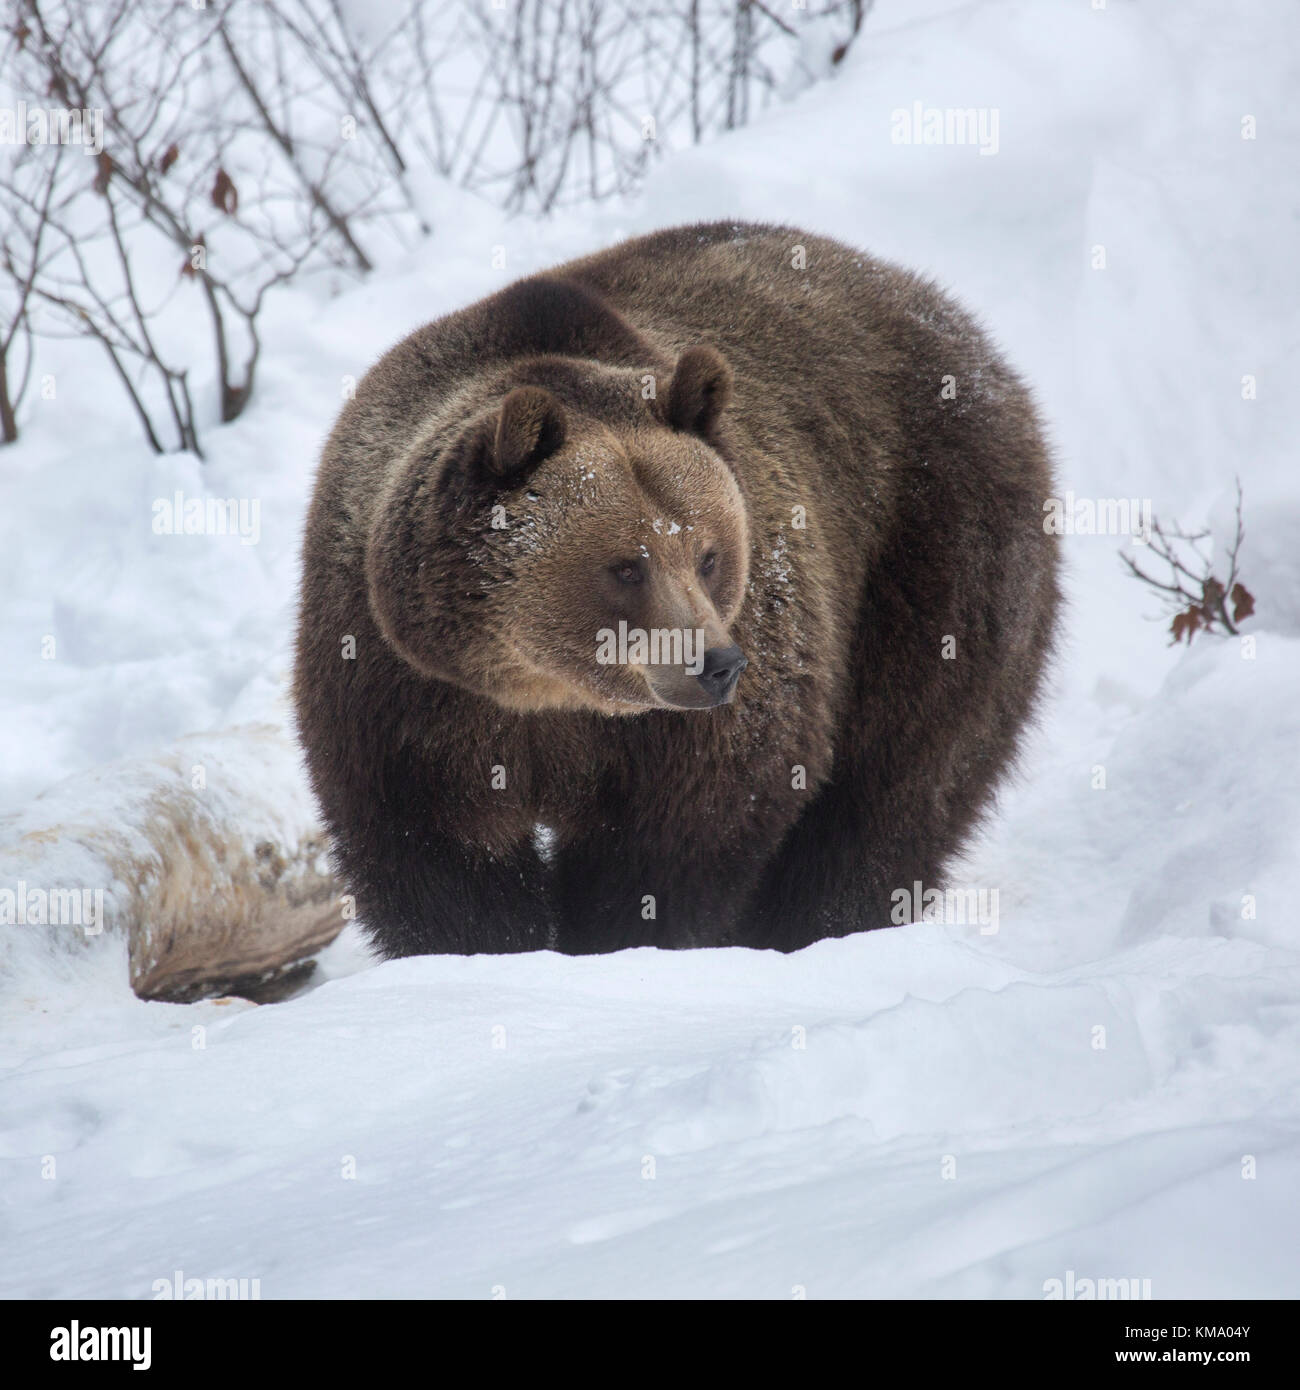 European brown bear (Ursus arctos arctos) foraging in deep snow in winter Stock Photo